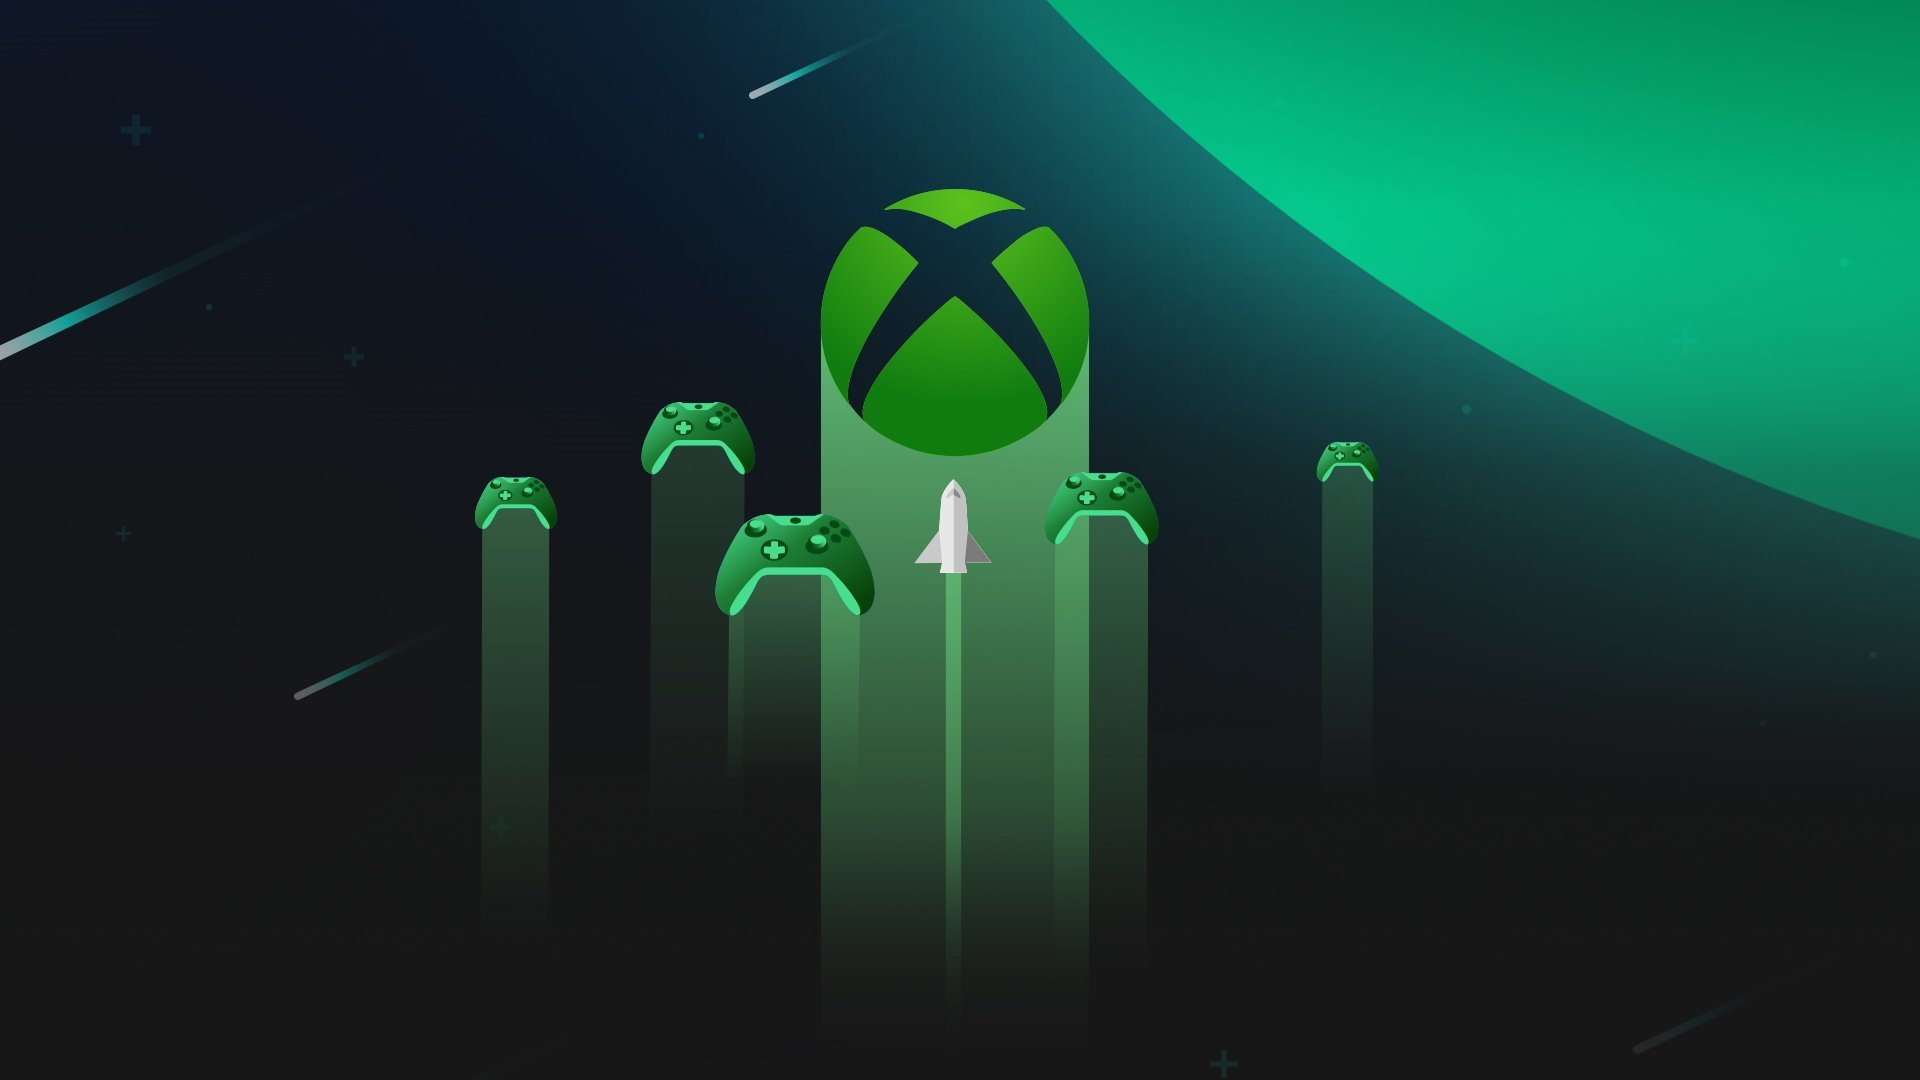 Phil Spencer parle de l'avenir de Xbox Cloud Gaming : upgrade de xCloud, jeux PC et streaming sur Xbox